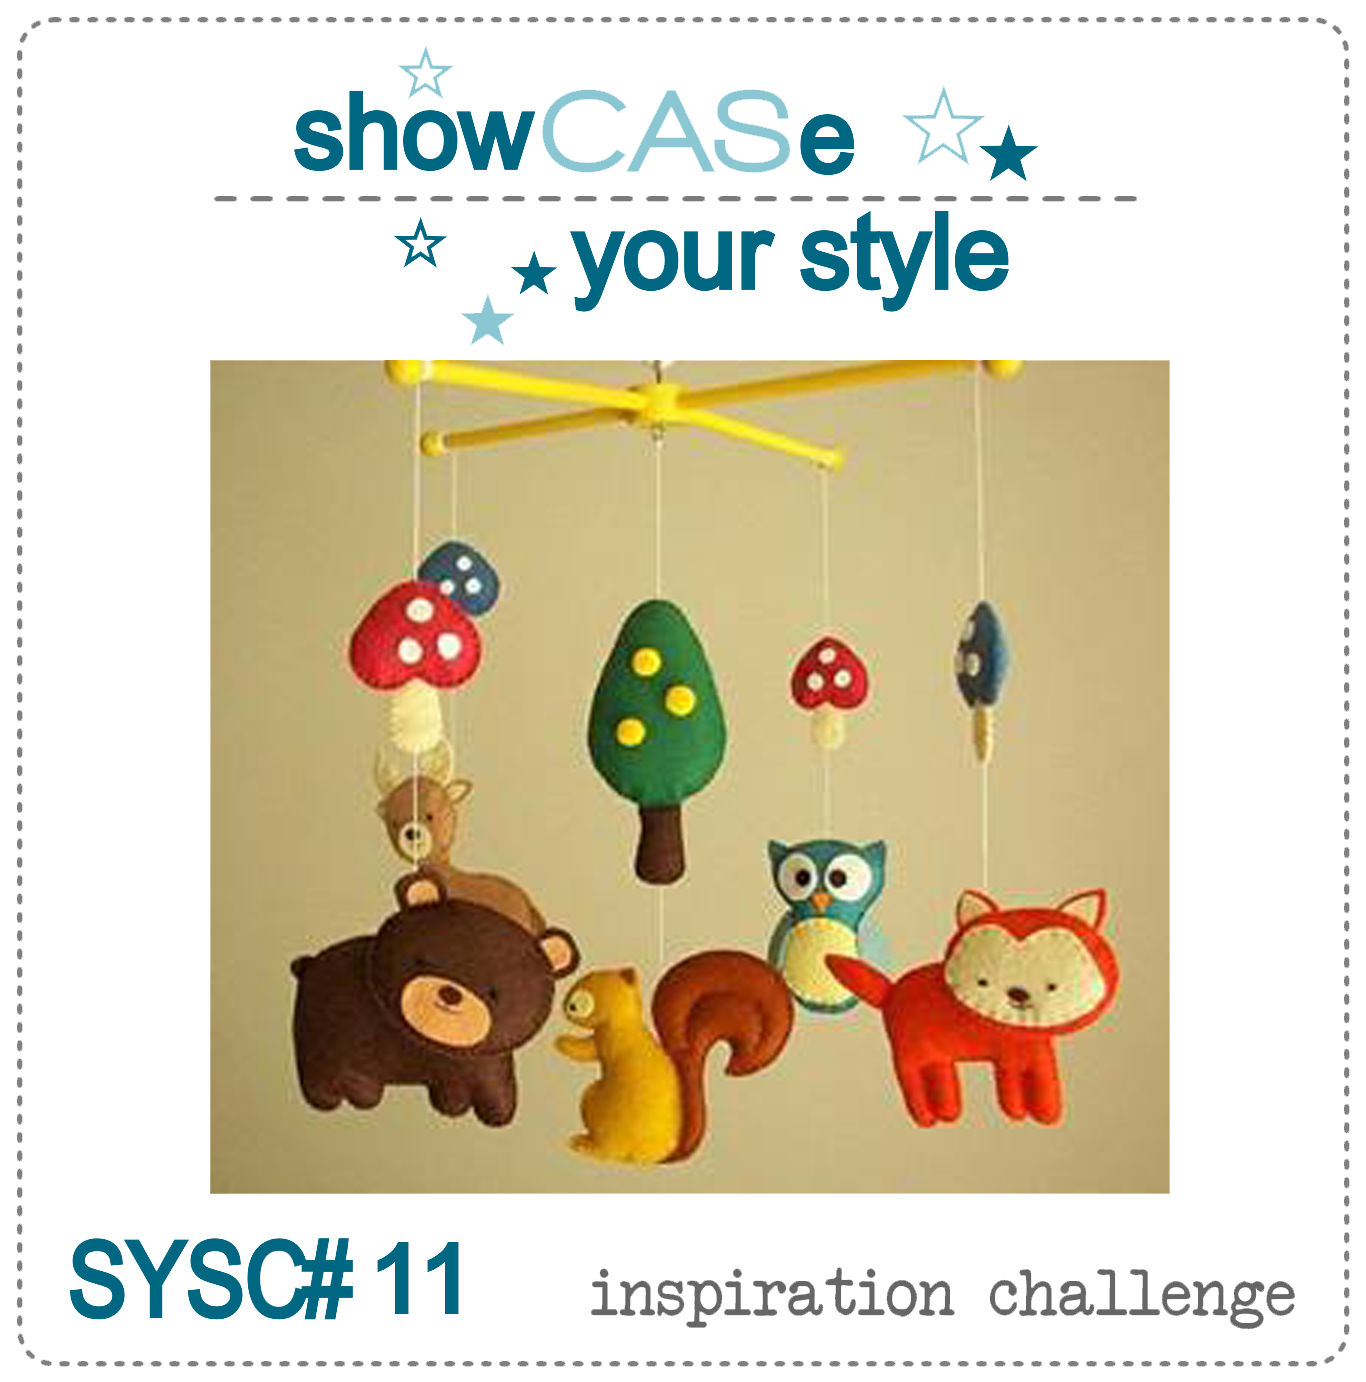 http://showcasechallenge.blogspot.de/2015/03/showcase-your-style-challenge-11.html